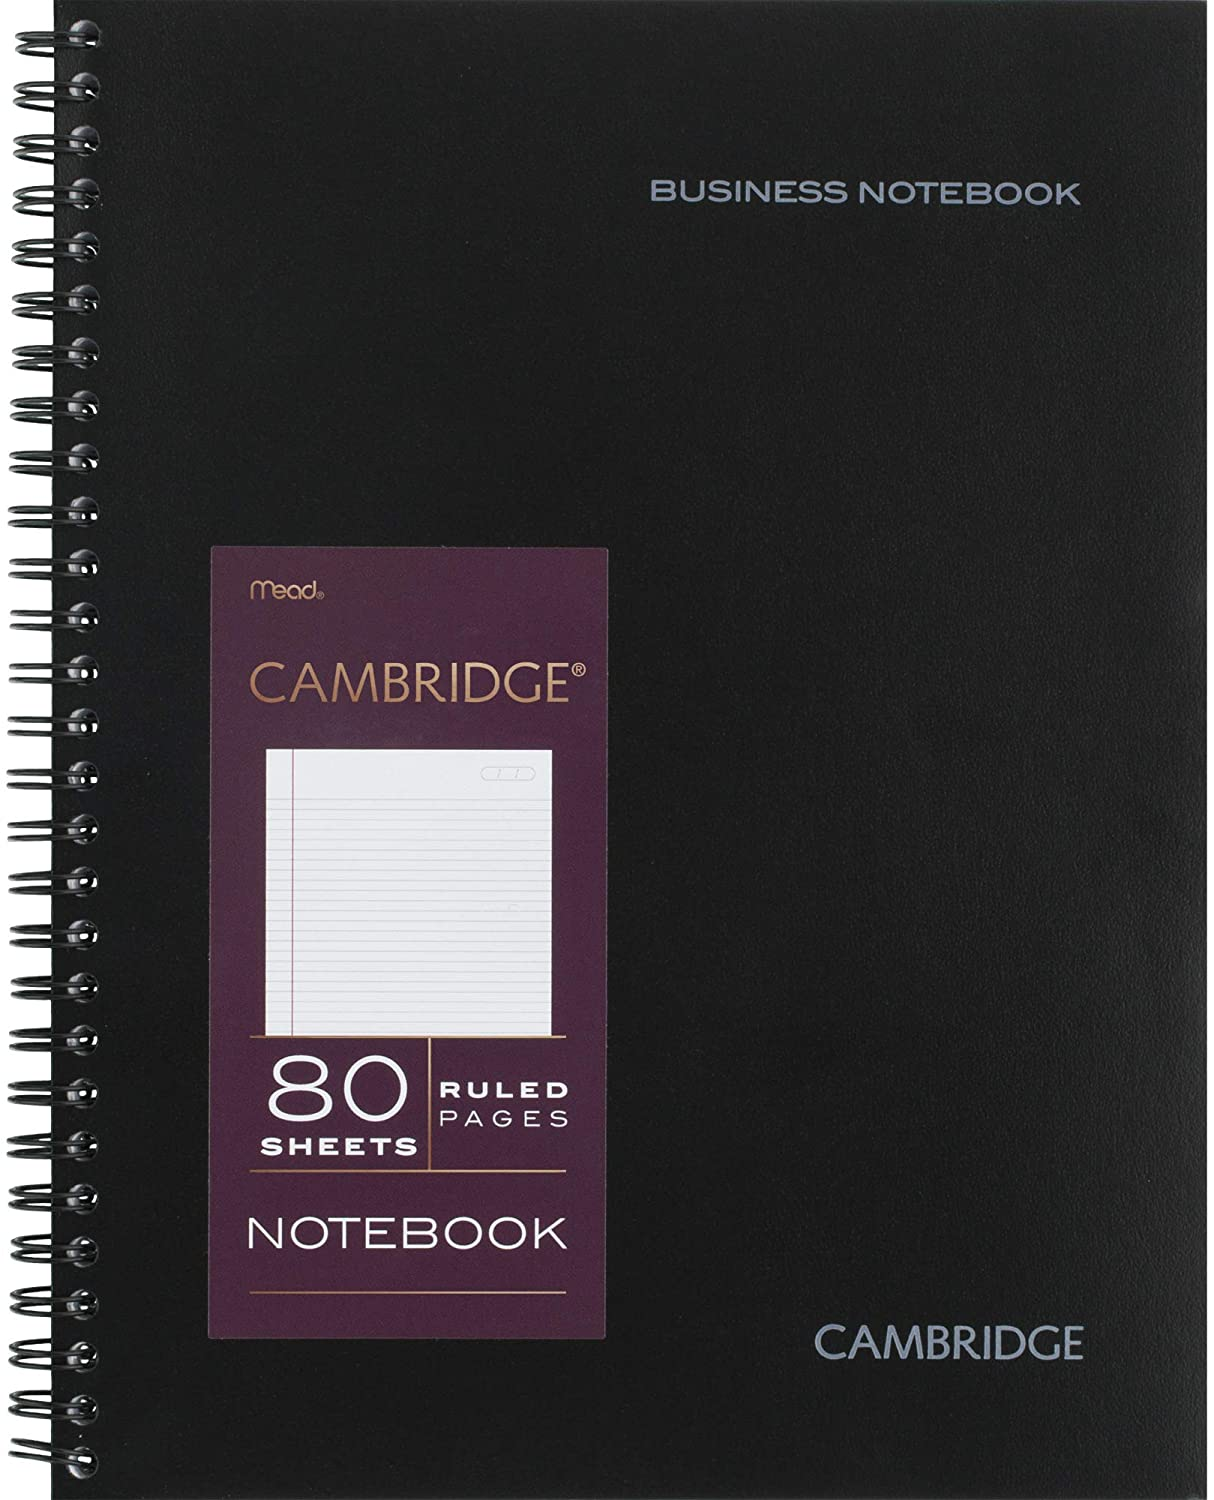 "Cambridge Limited Professional Spiral Notebook NEW BUSINESS ADDITION, Legal Ruled Lines, 6-5/8"" X 9-1/2"" Page Size, 80 Sheets, Wirebound Office Journal & Notebook for Women & Men, Black (CAM10-402)"